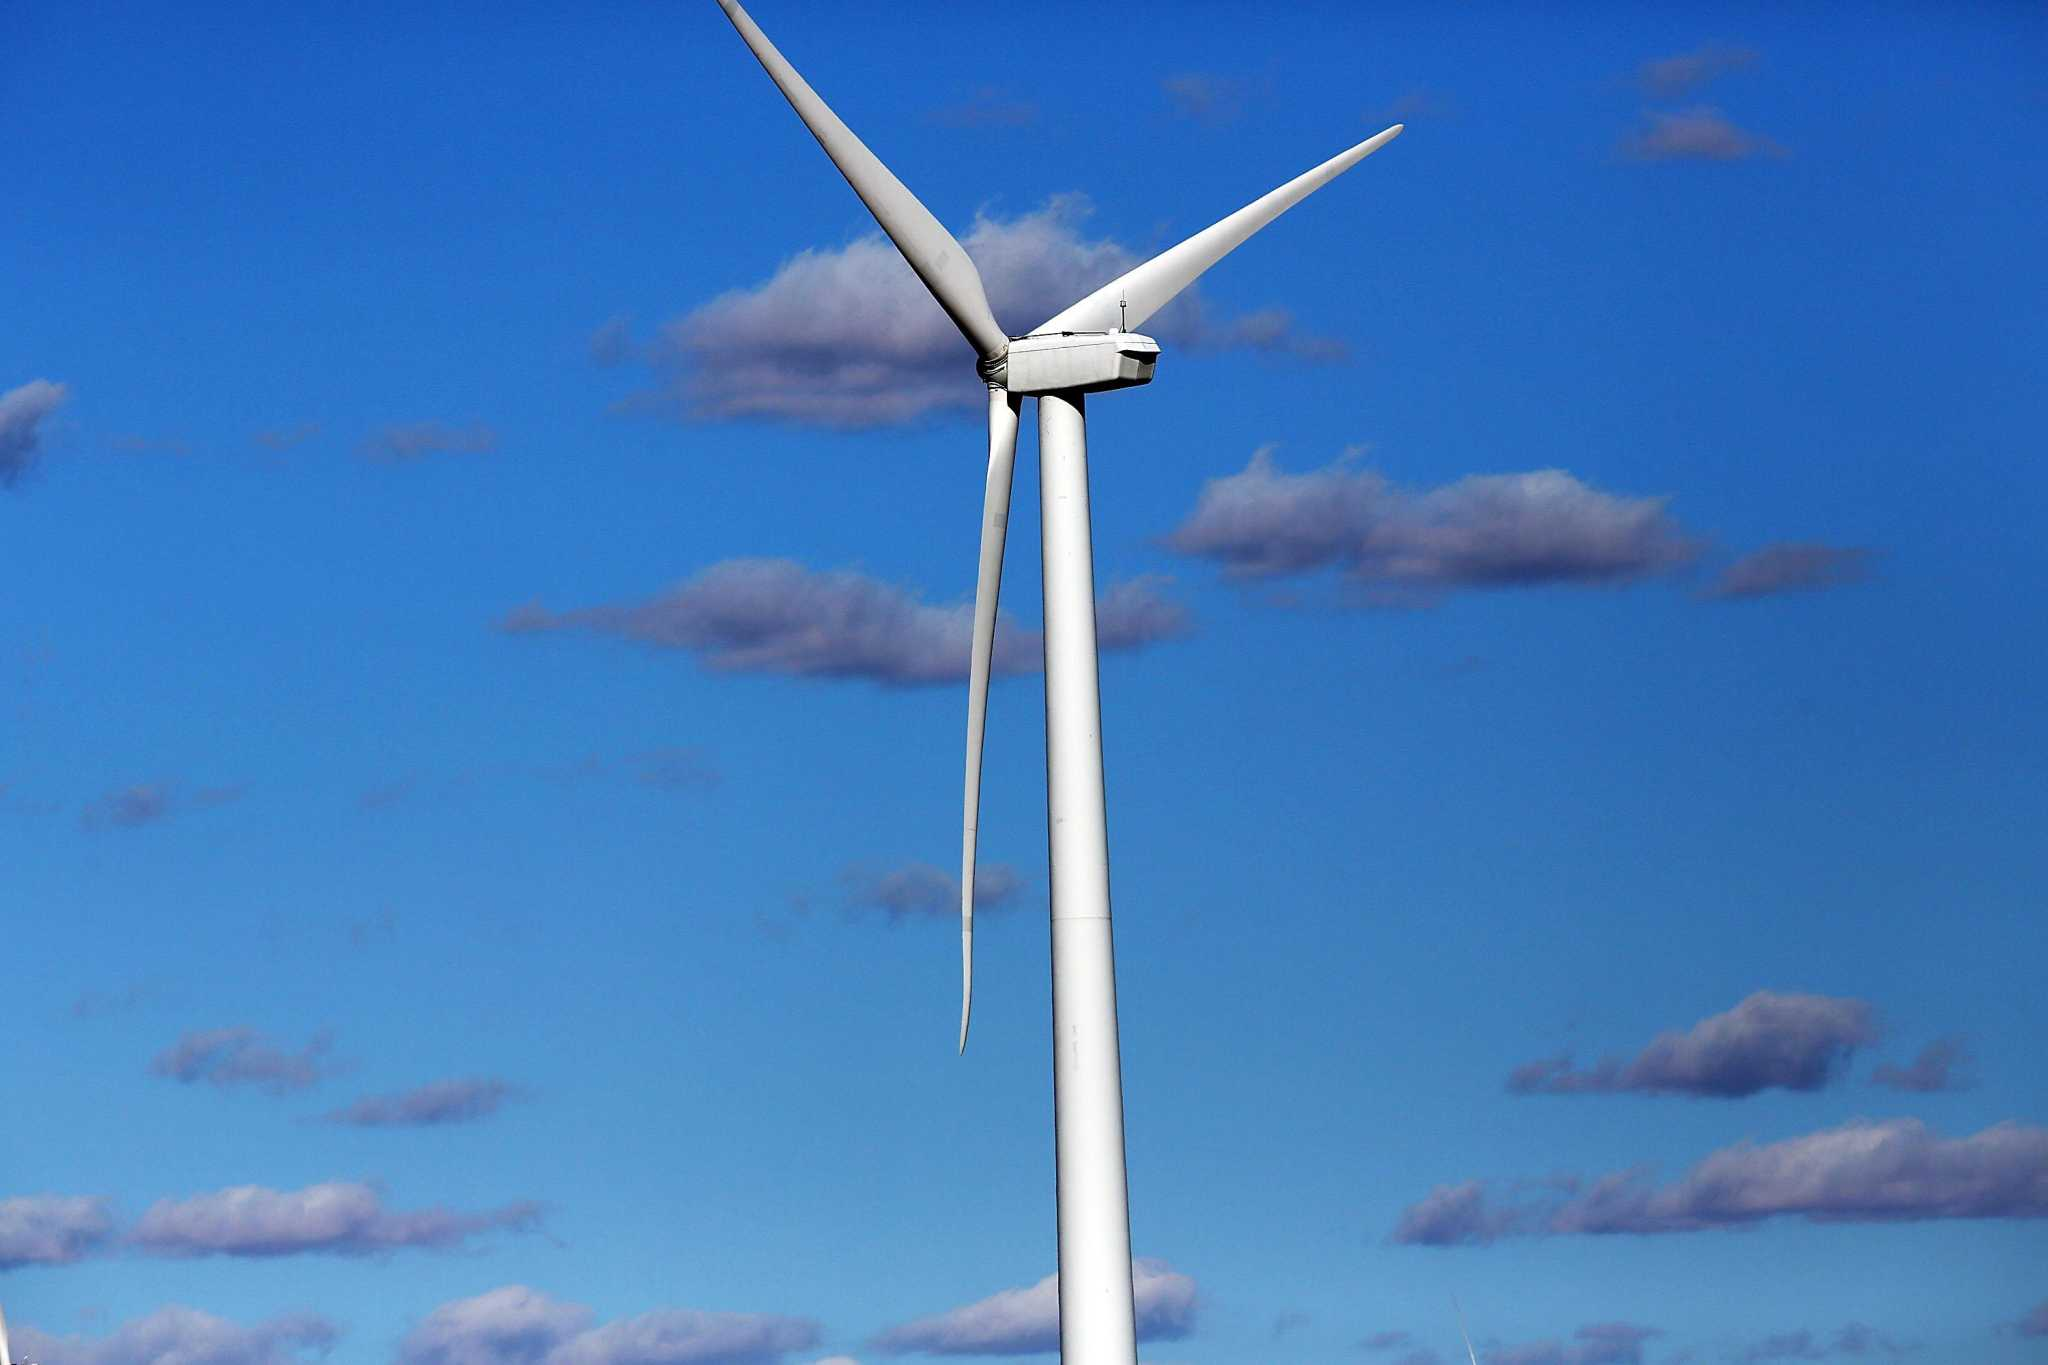 Express Way Farm Turbines On Million Wind For300 San The Antonio qSzVpMLUG